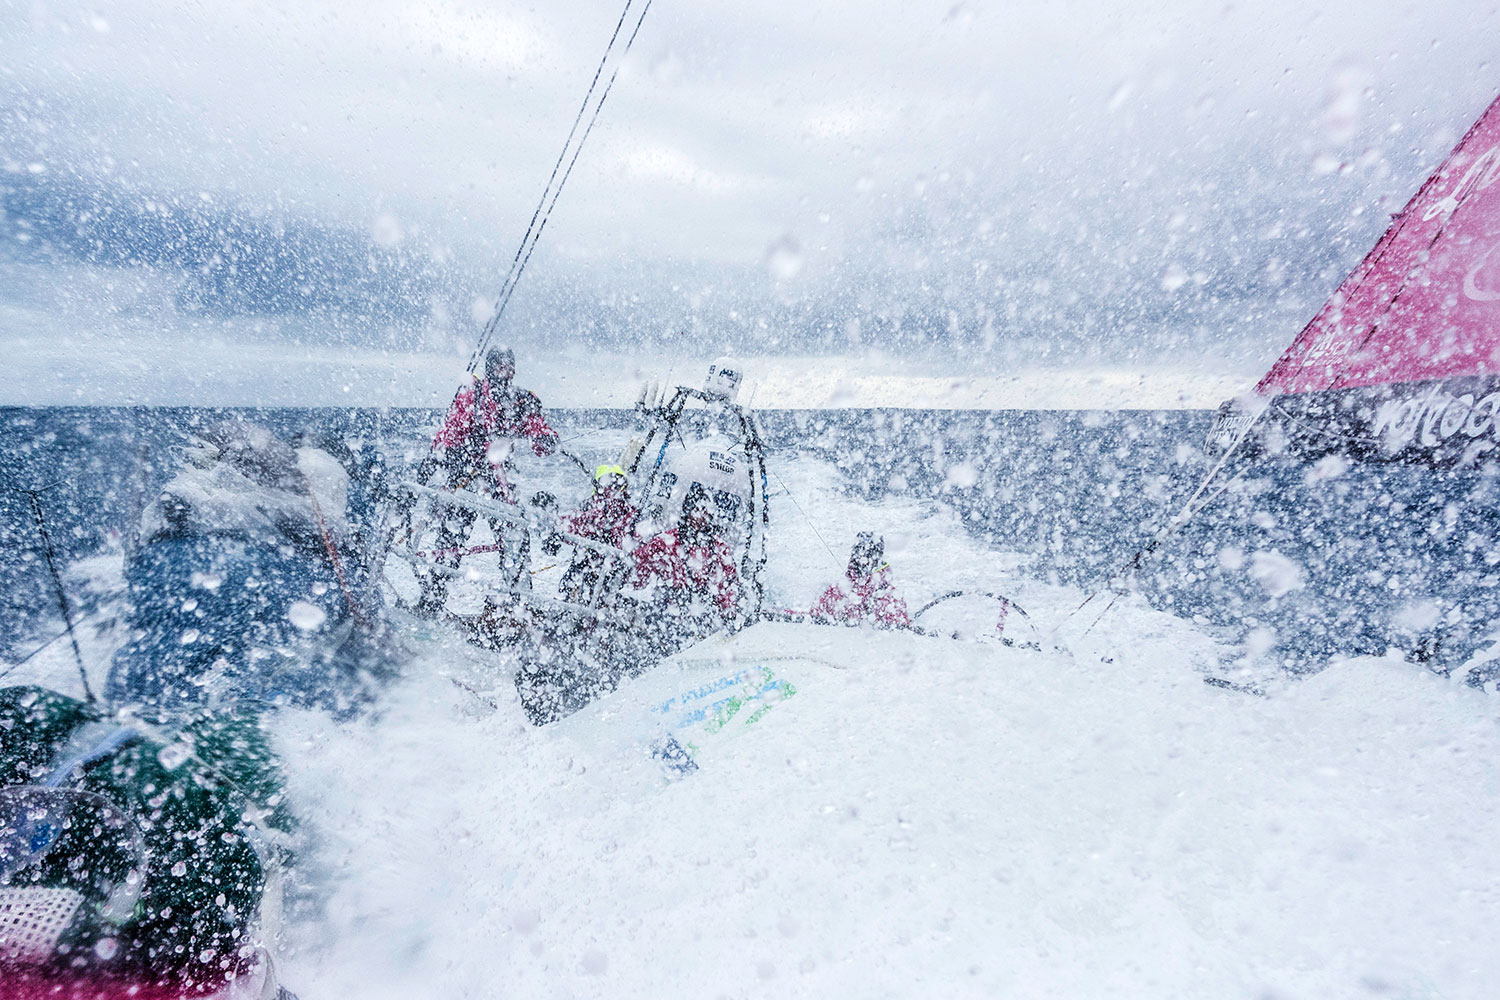 March, 2015. Leg 5 onboard Team SCA, from New Zealand to Brazil through the Southern Ocean. We're leaving behind the remnants of Cyclone Pam and heading into the most remote part of the world. Wind and swell have picked up and it's getting very cold and wet on deck. PHOTO: ANNA-LENA ELLED / TEAM SCA / VOLVO OCEAN RACE